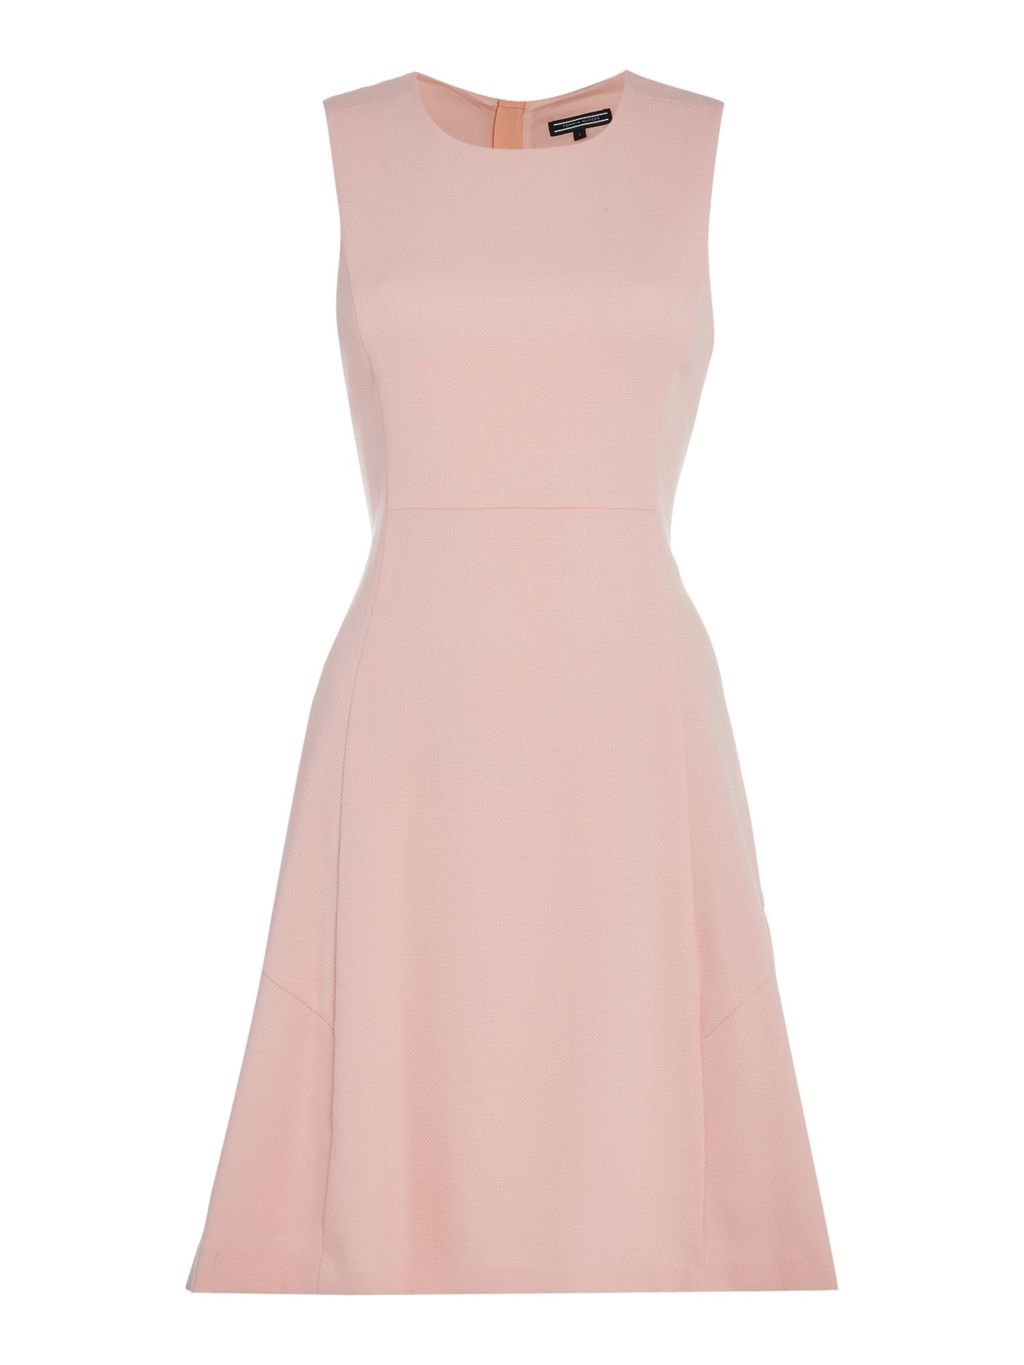 Jemma Dress, Peach - pattern: plain; sleeve style: sleeveless; predominant colour: blush; occasions: evening; length: just above the knee; fit: fitted at waist & bust; style: fit & flare; fibres: polyester/polyamide - stretch; neckline: crew; sleeve length: sleeveless; pattern type: fabric; texture group: jersey - stretchy/drapey; season: s/s 2016